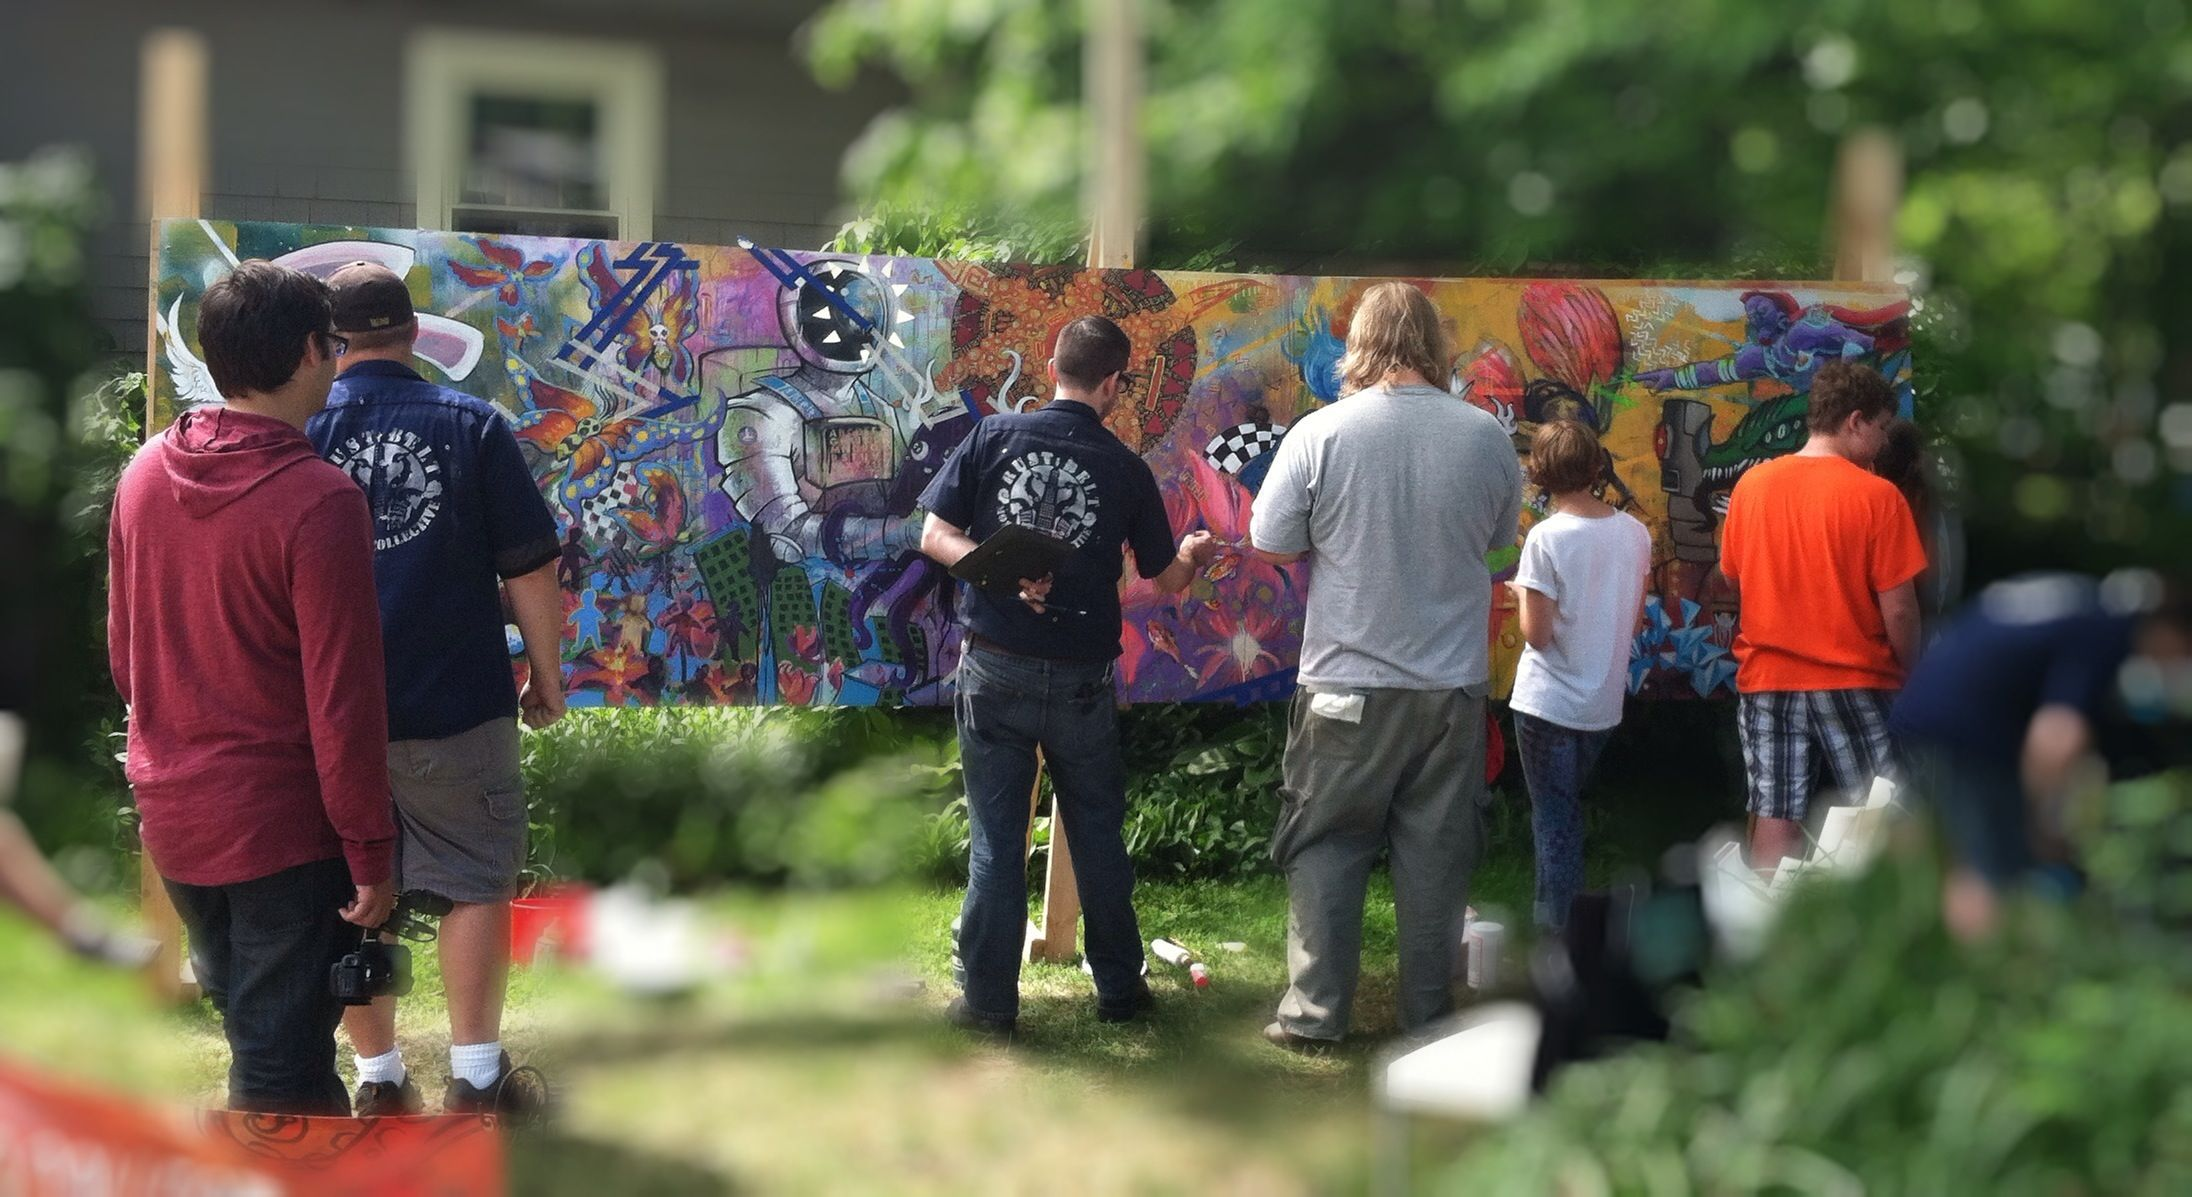 Rust Belt Monster Collective painting mural at Art & Music Festival, June 15, 2013